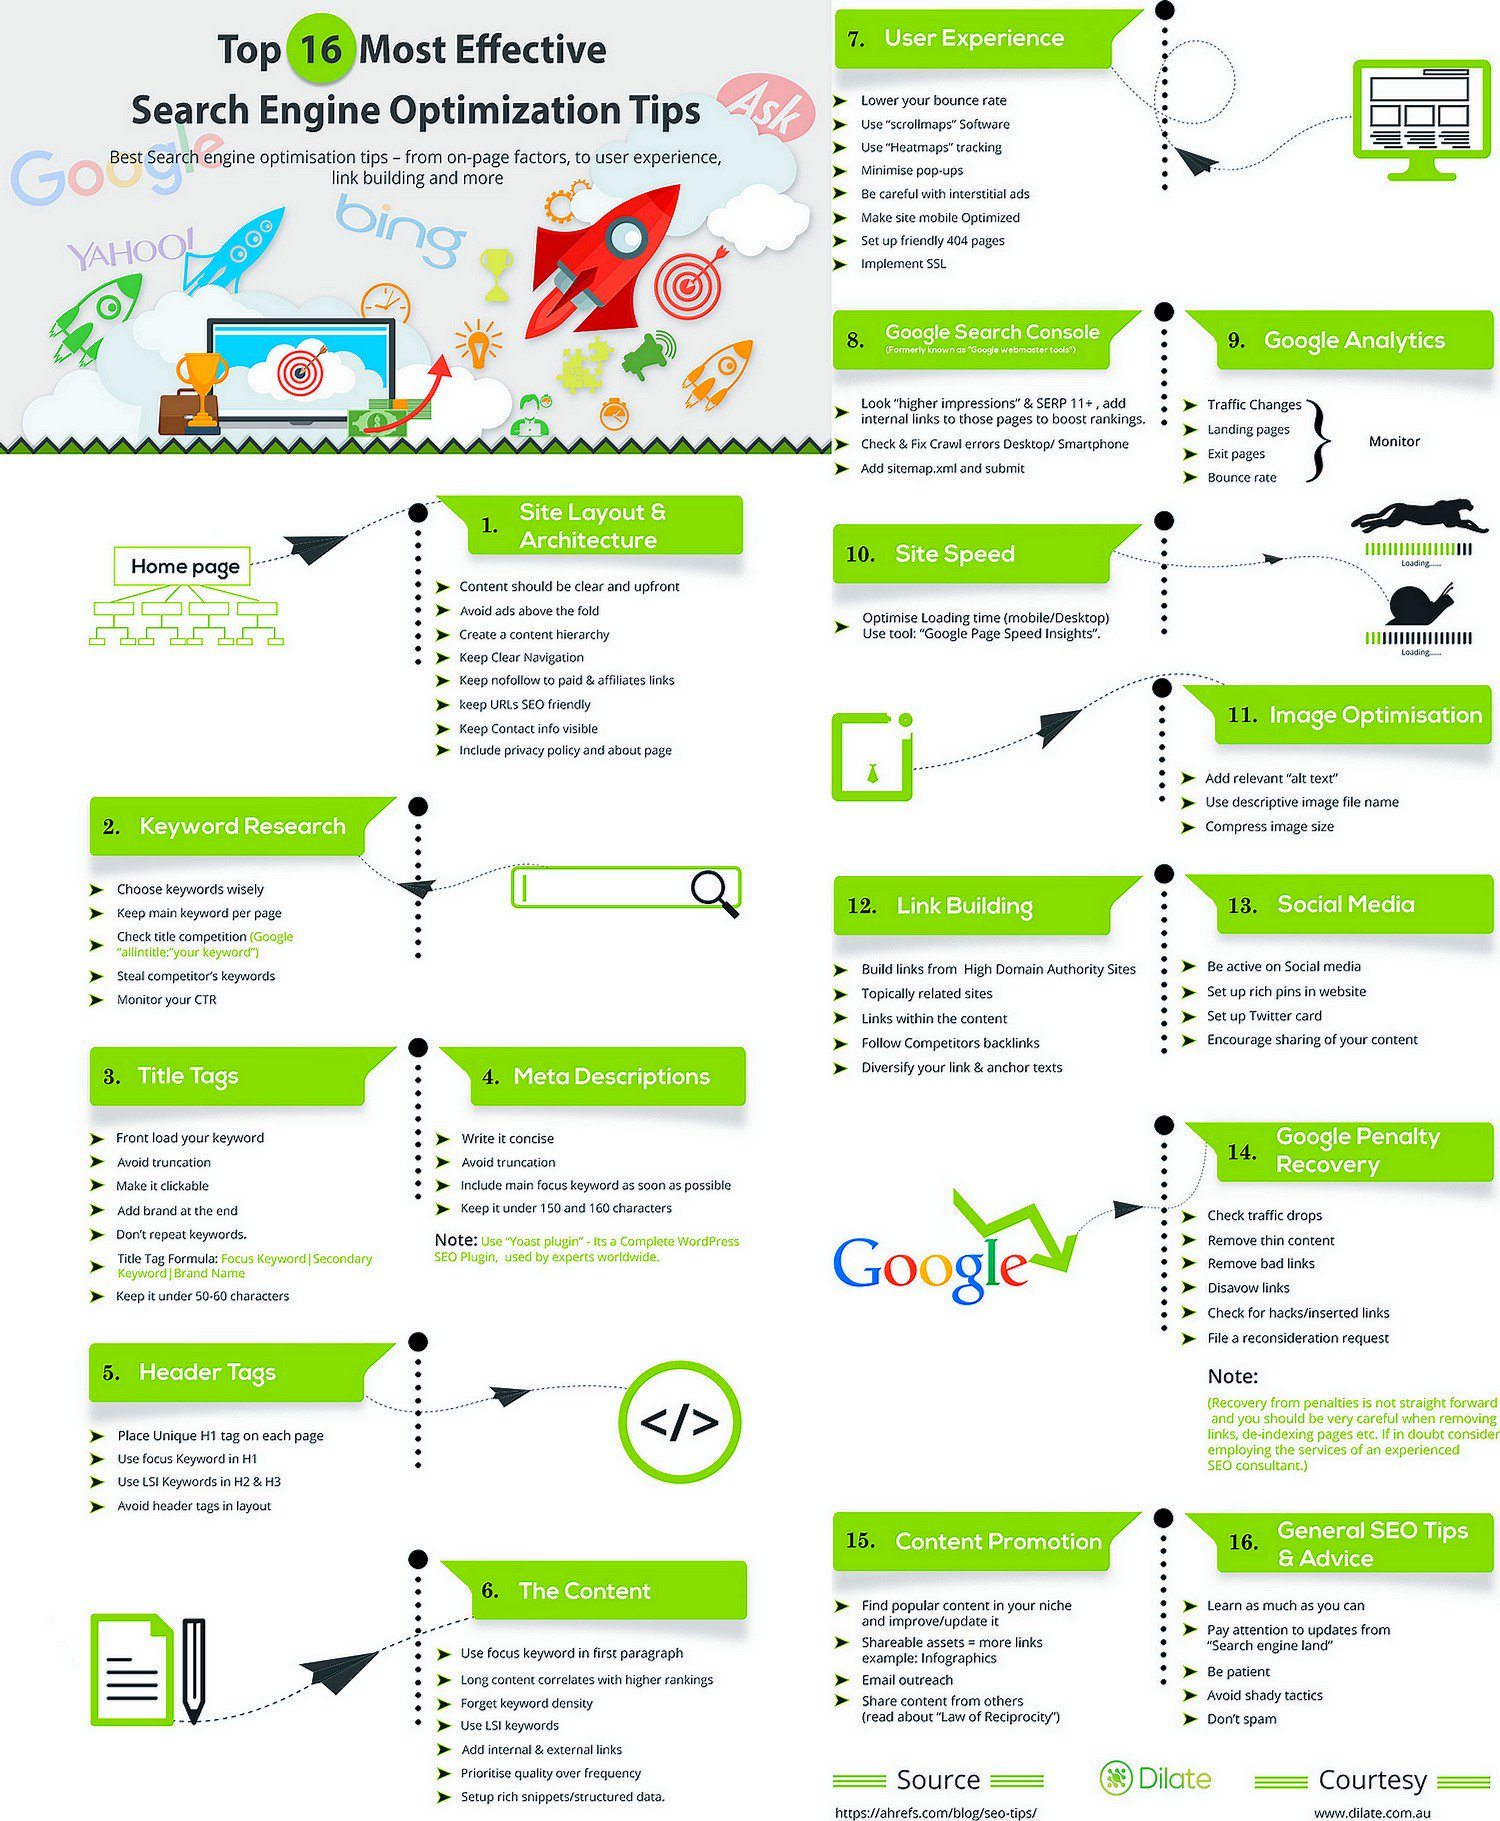 The 16 most effective search engine optimization tips